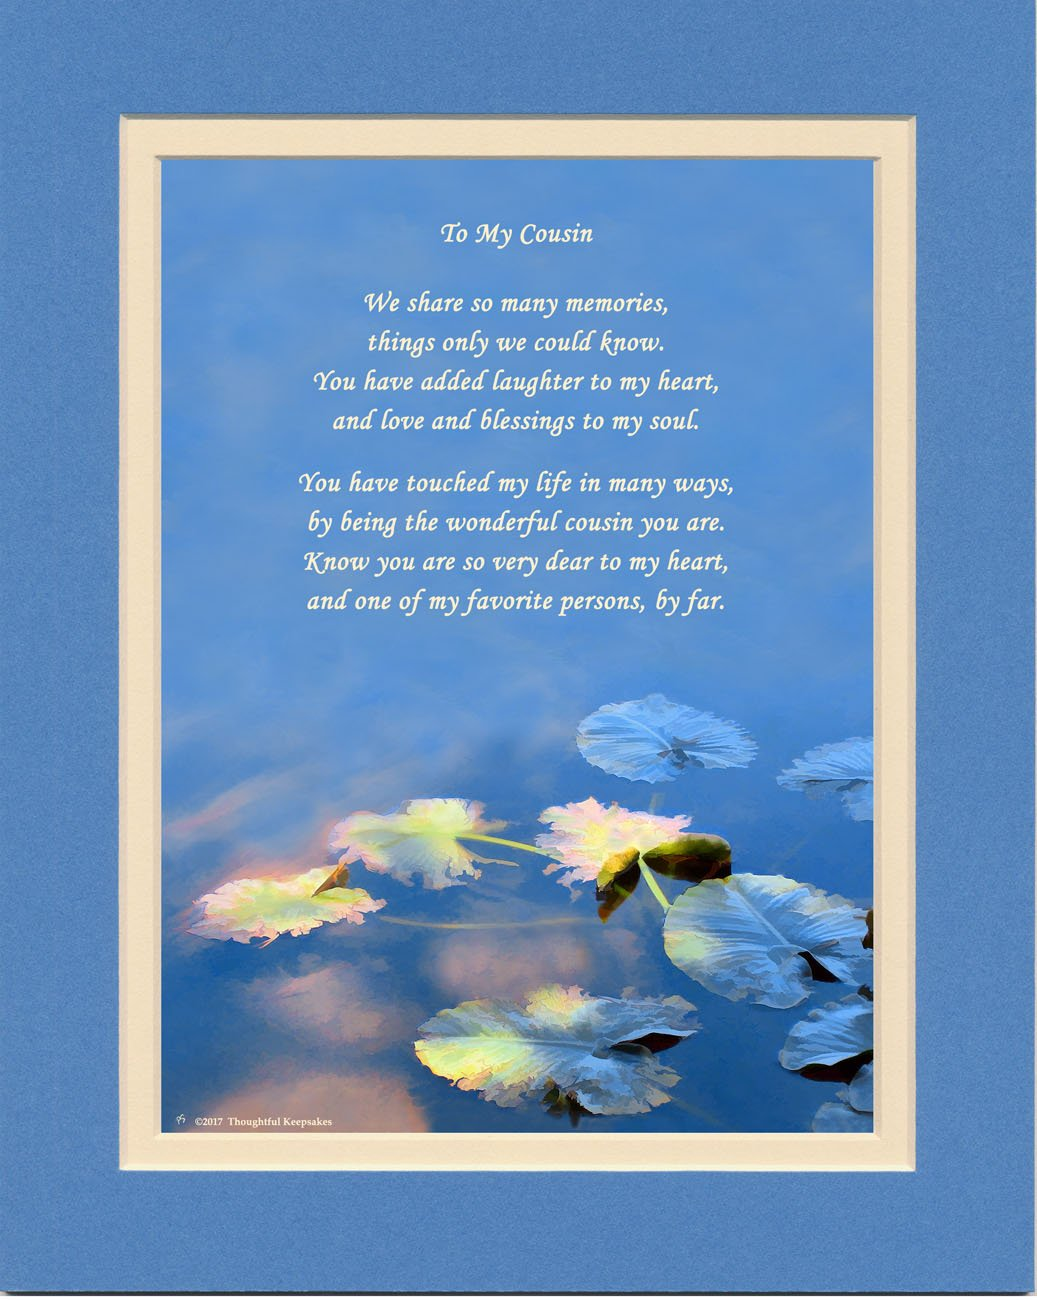 Cousin Gift with You Have Touched My Life in Many Ways, By Being the Wonderful Cousin You Are Poem. Water Lily Leaves, 8x10 Matted. Special Birthday or for Cousins.